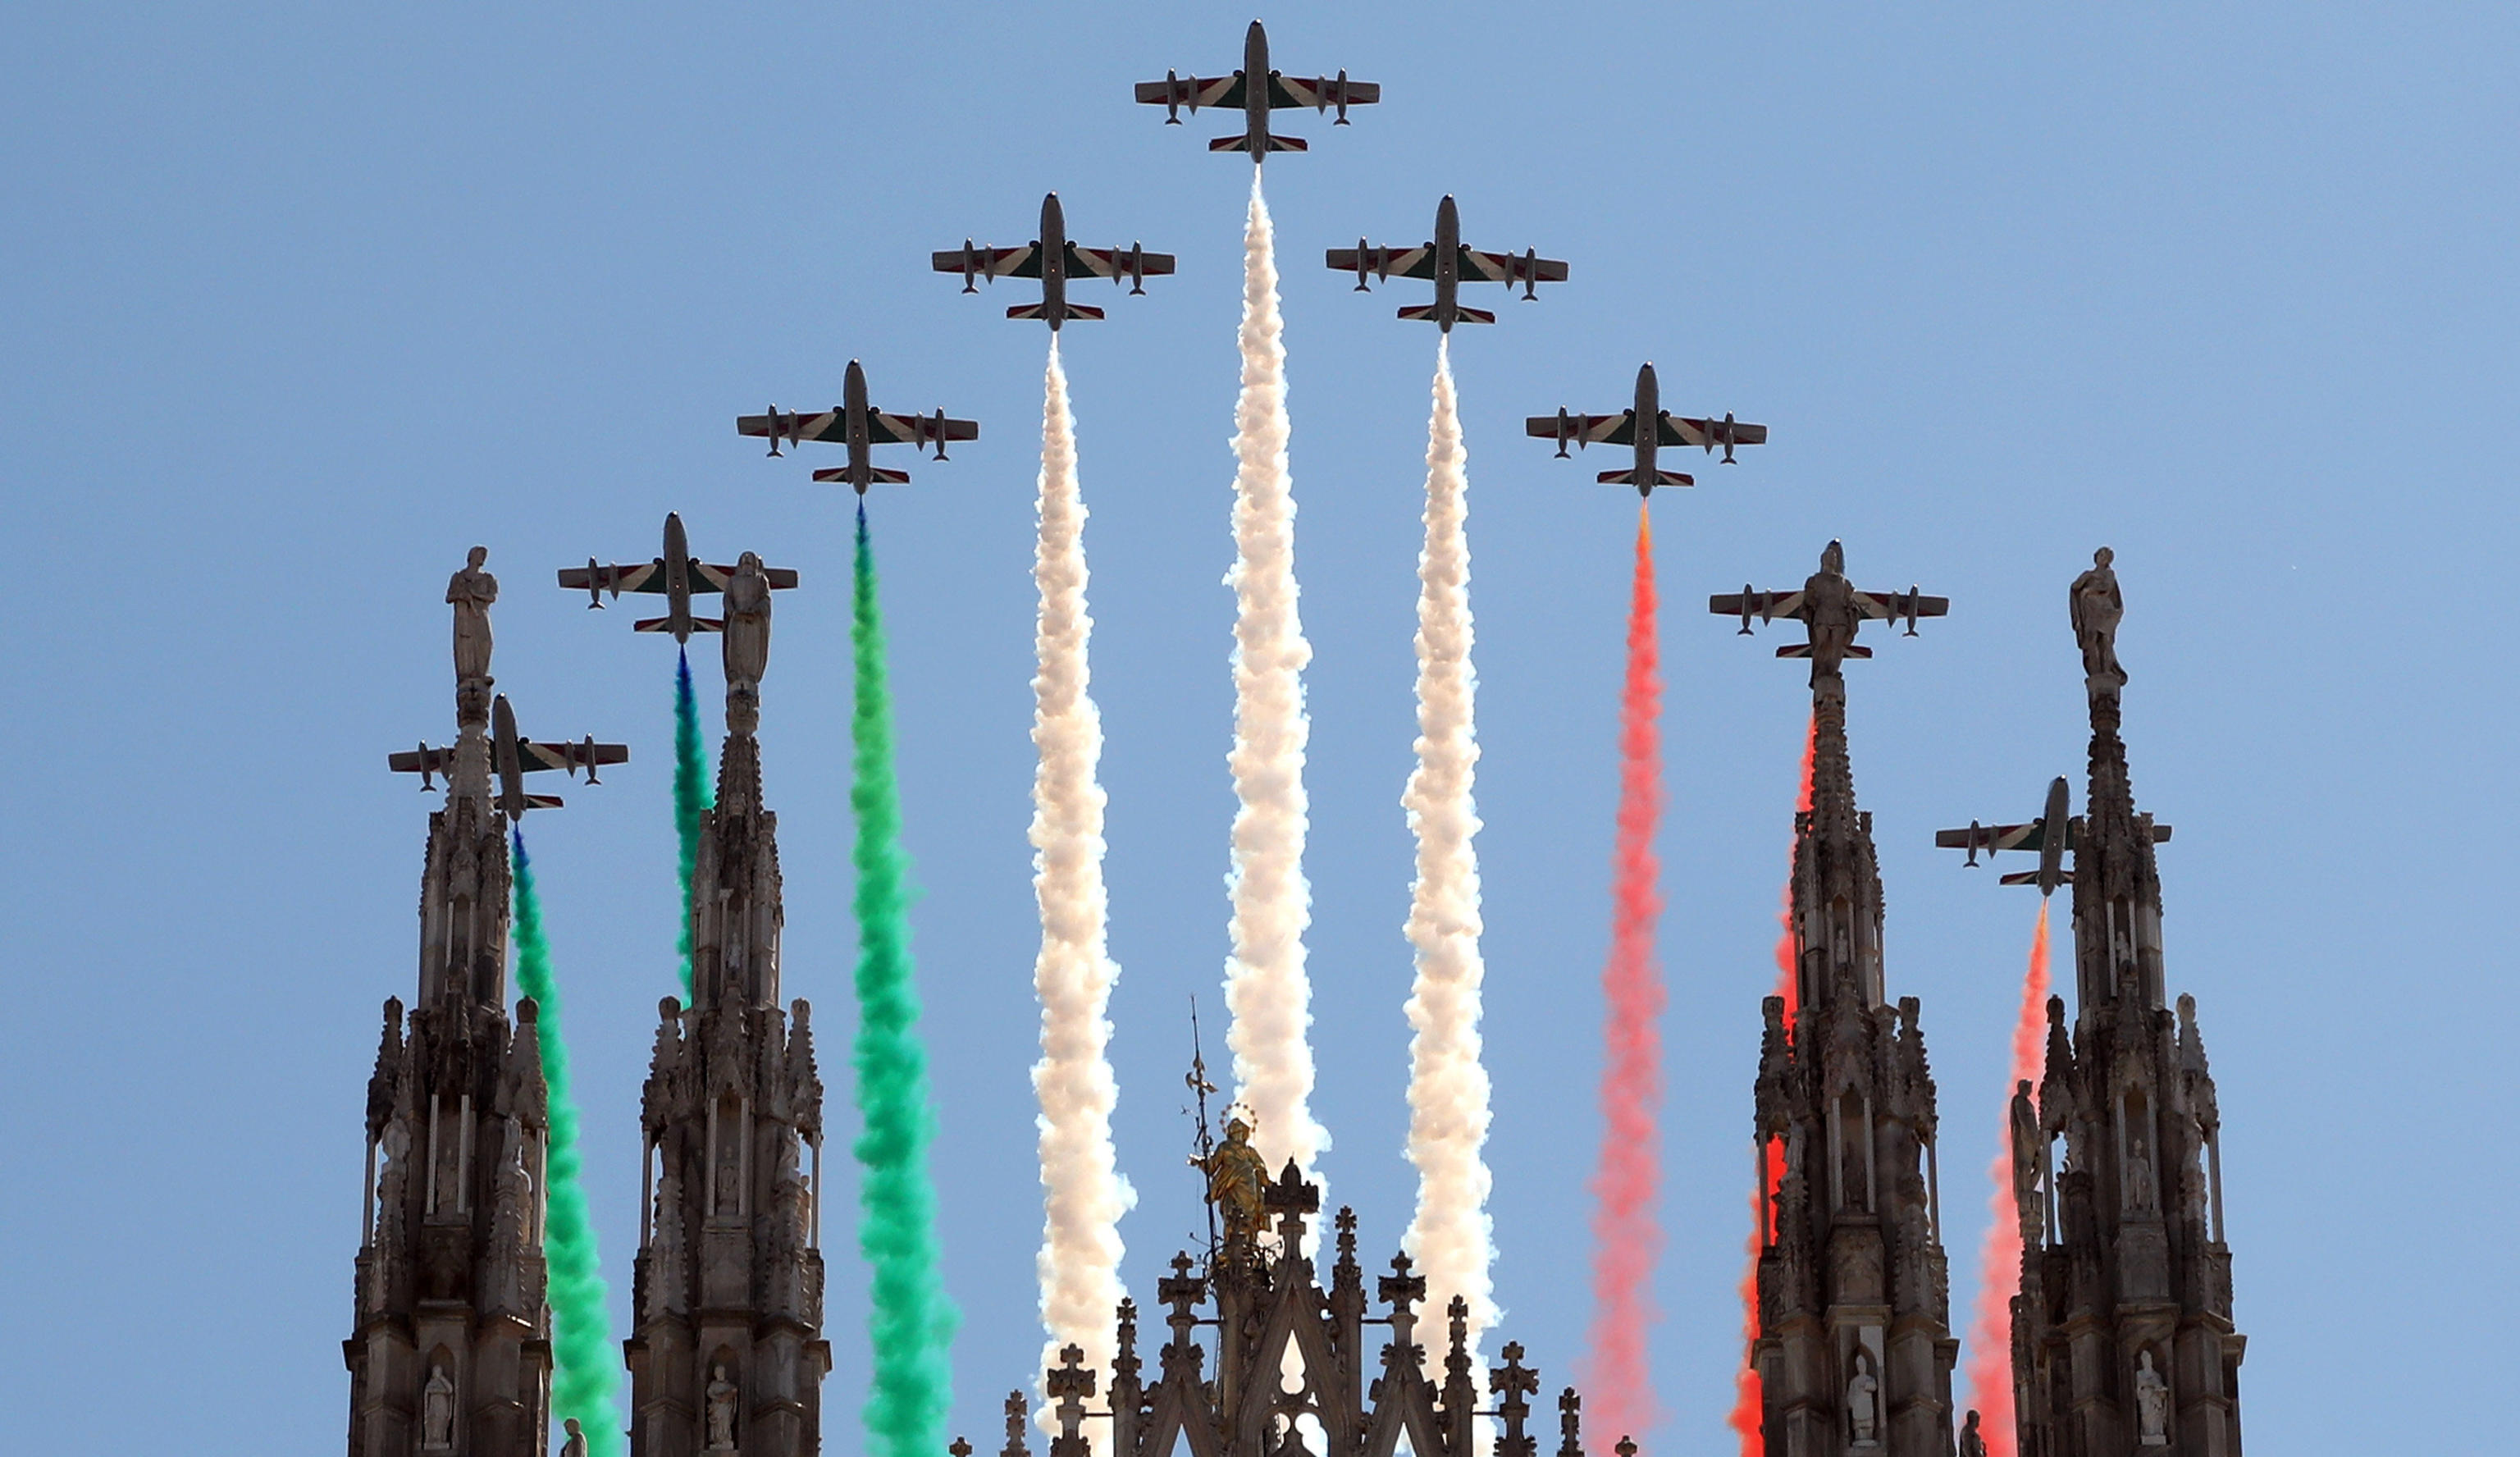 Italian Air Forces aerobatic demonstration team, the Frecce Tricolori, as they fly over the cathedral in Milan, Italy, 25 May 2020. From today the Frecce Tricolori will draw it every day in the Italian sky, flying over all the regions. It will be a big hug to the Italians which will close in Rome on June 2nd for the Republic Day. ANSA/MATTEO BAZZI